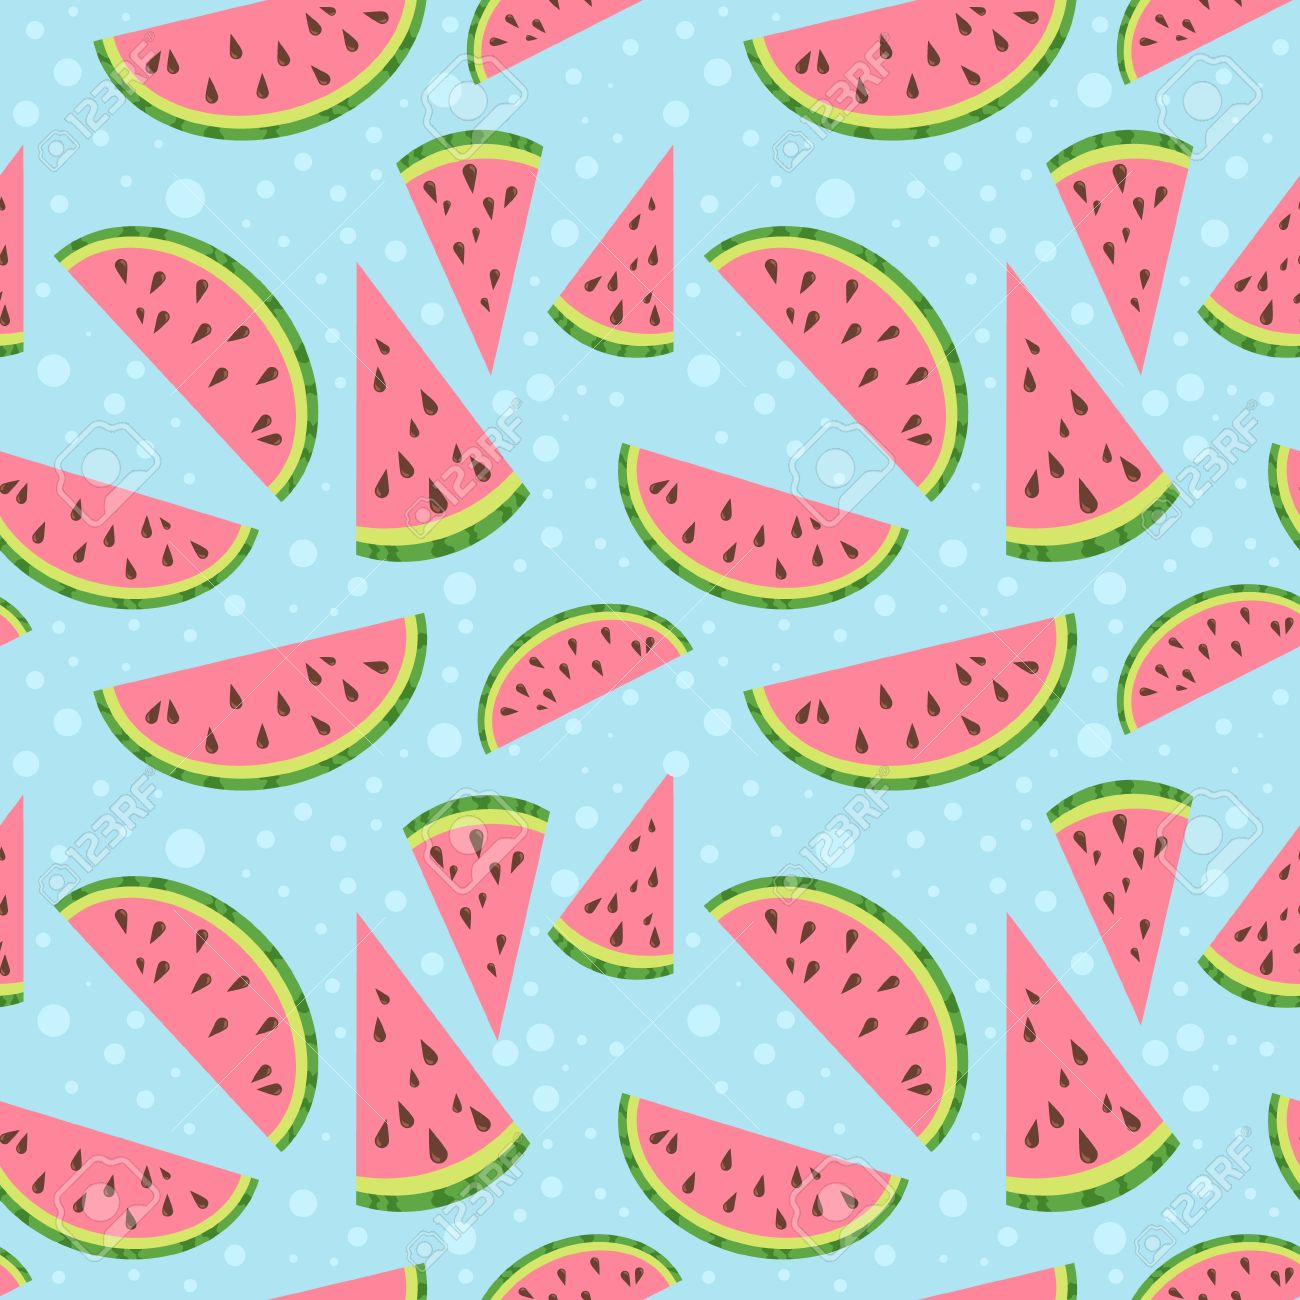 Watermelon vector colorful seamless pattern - 22175921